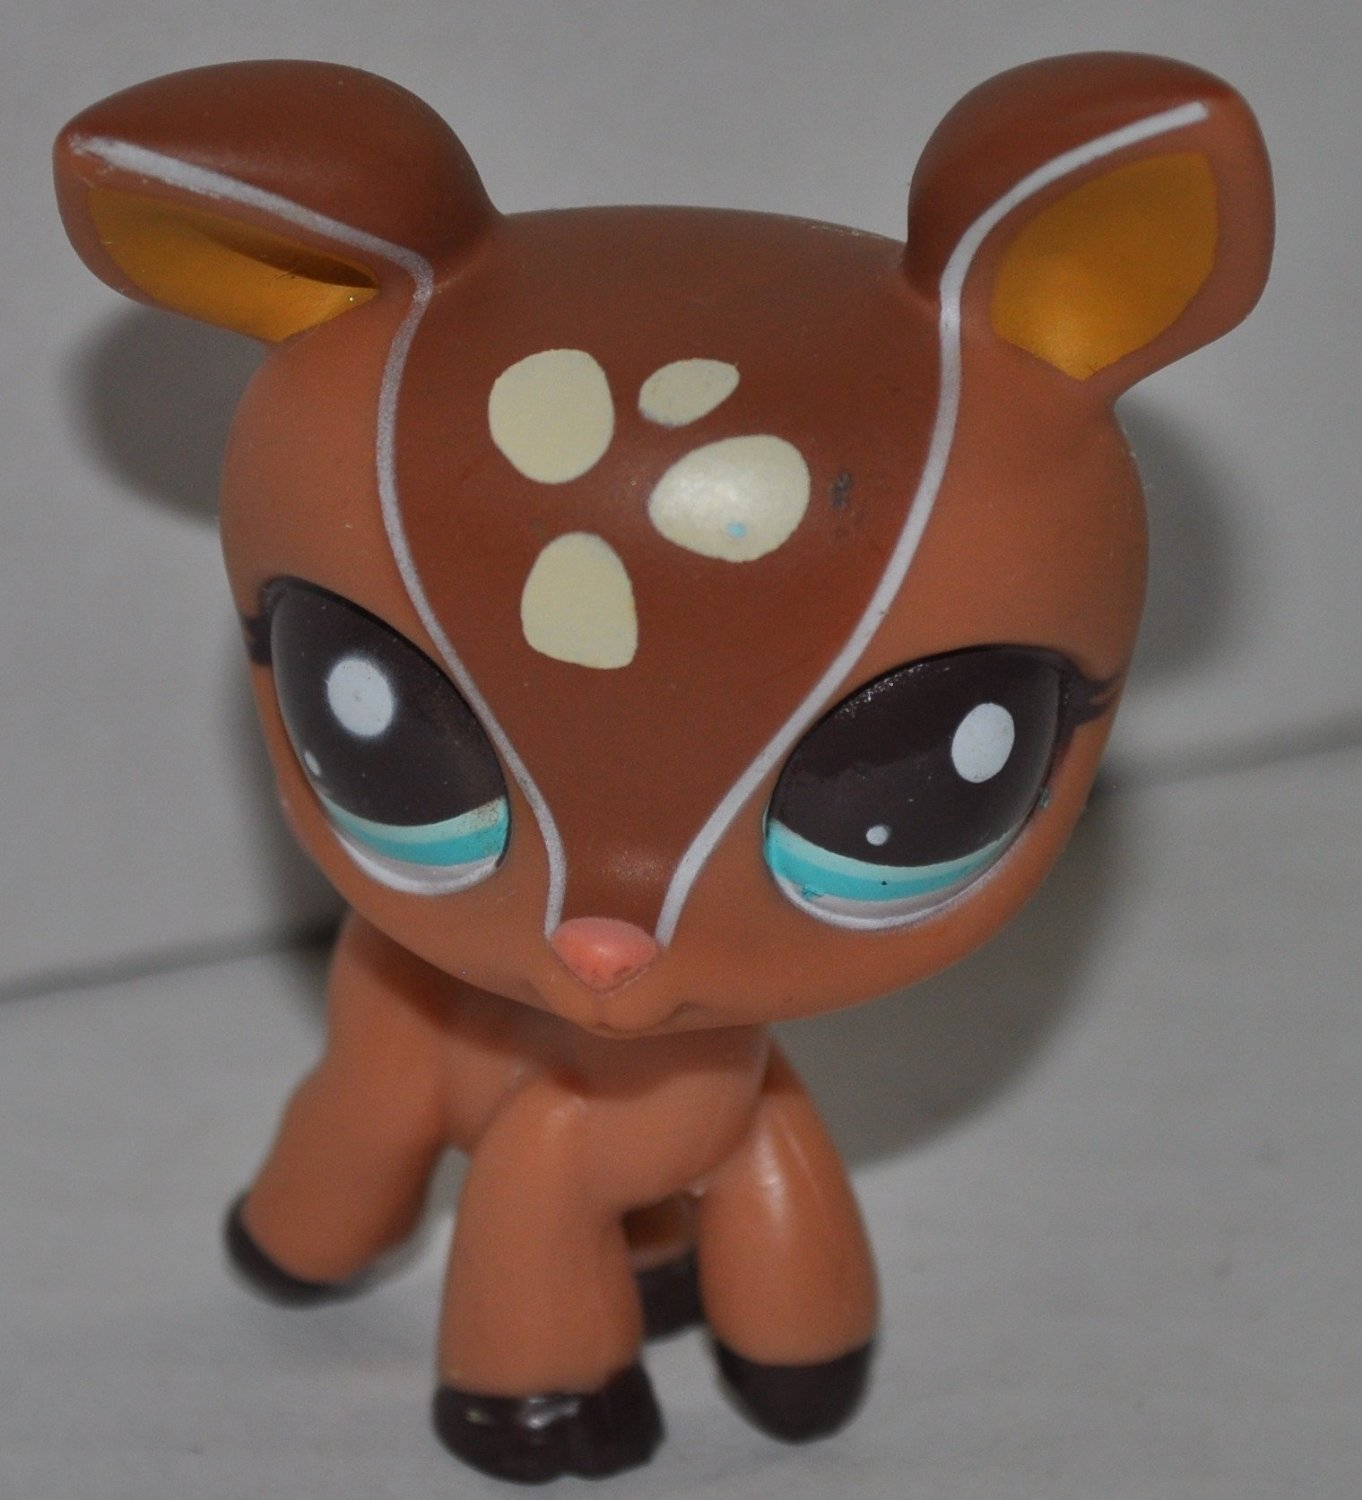 Deer #2499 Littlest Pet Shop (Retired) Collector Toy LPS Collectible Replacement Figure Loose